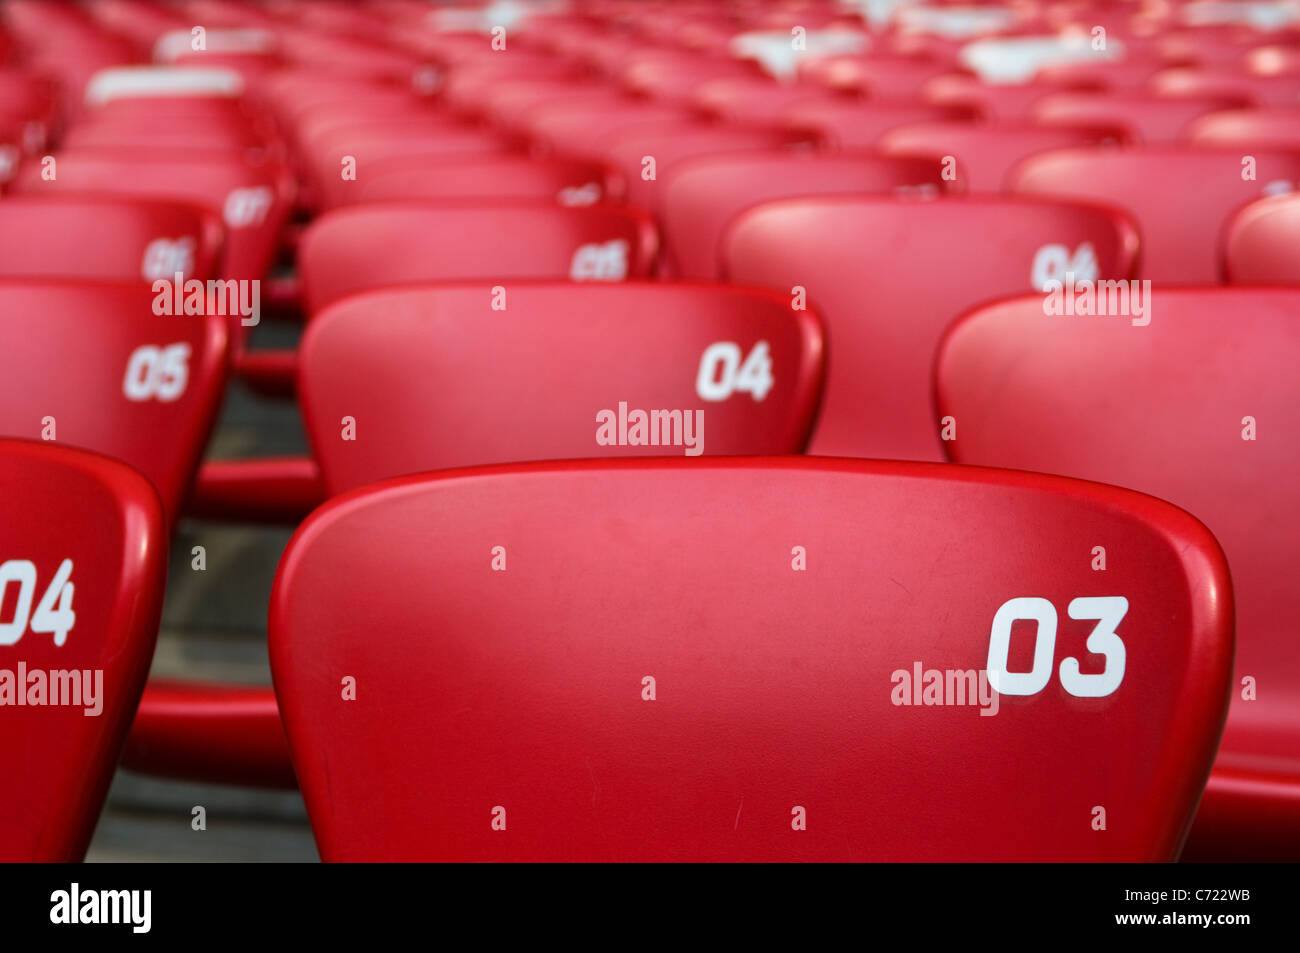 Red chairs at a stadium - Stock Image